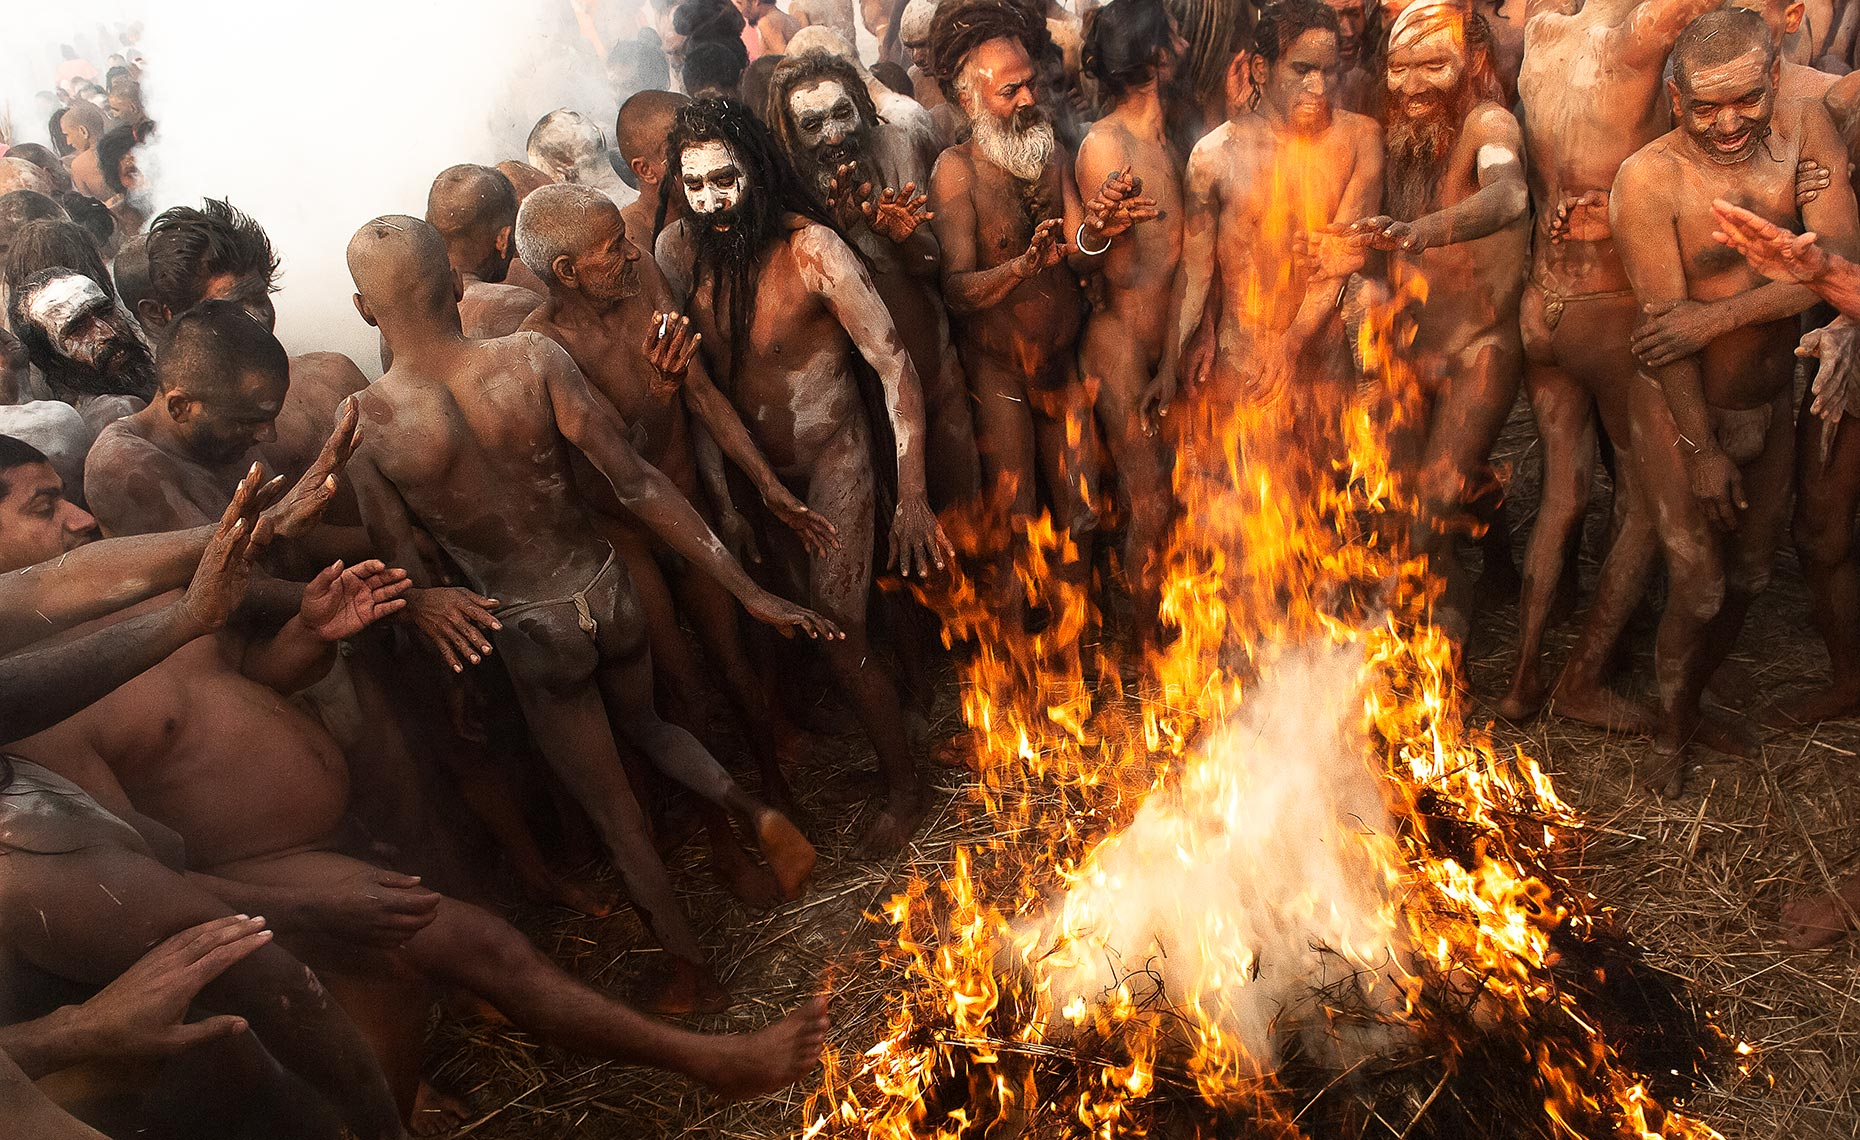 Naga Sadhus on Bath Day, Kumbh Mela, Allahabad, India. Photo © Konstantino Hatzisarros 2010